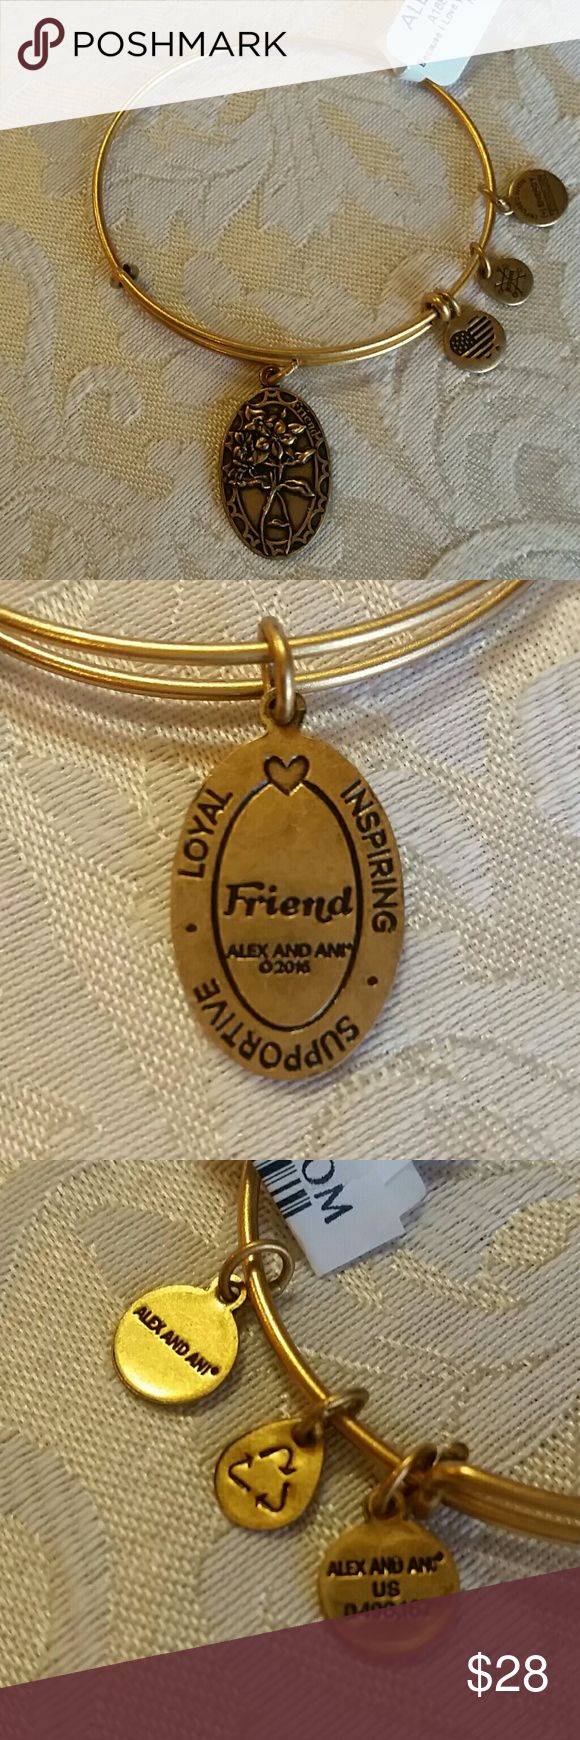 """Alex And Ani Friendship Bracelet Pretty bouquet of flowers on one side and on the other  the word """"Friend"""" in the center surrounded by the words """"LOYAL, INSPIRING, SUPPORTIVE"""".  From Nordstrom, comes with box. Alex And Ani Jewelry Bracelets"""